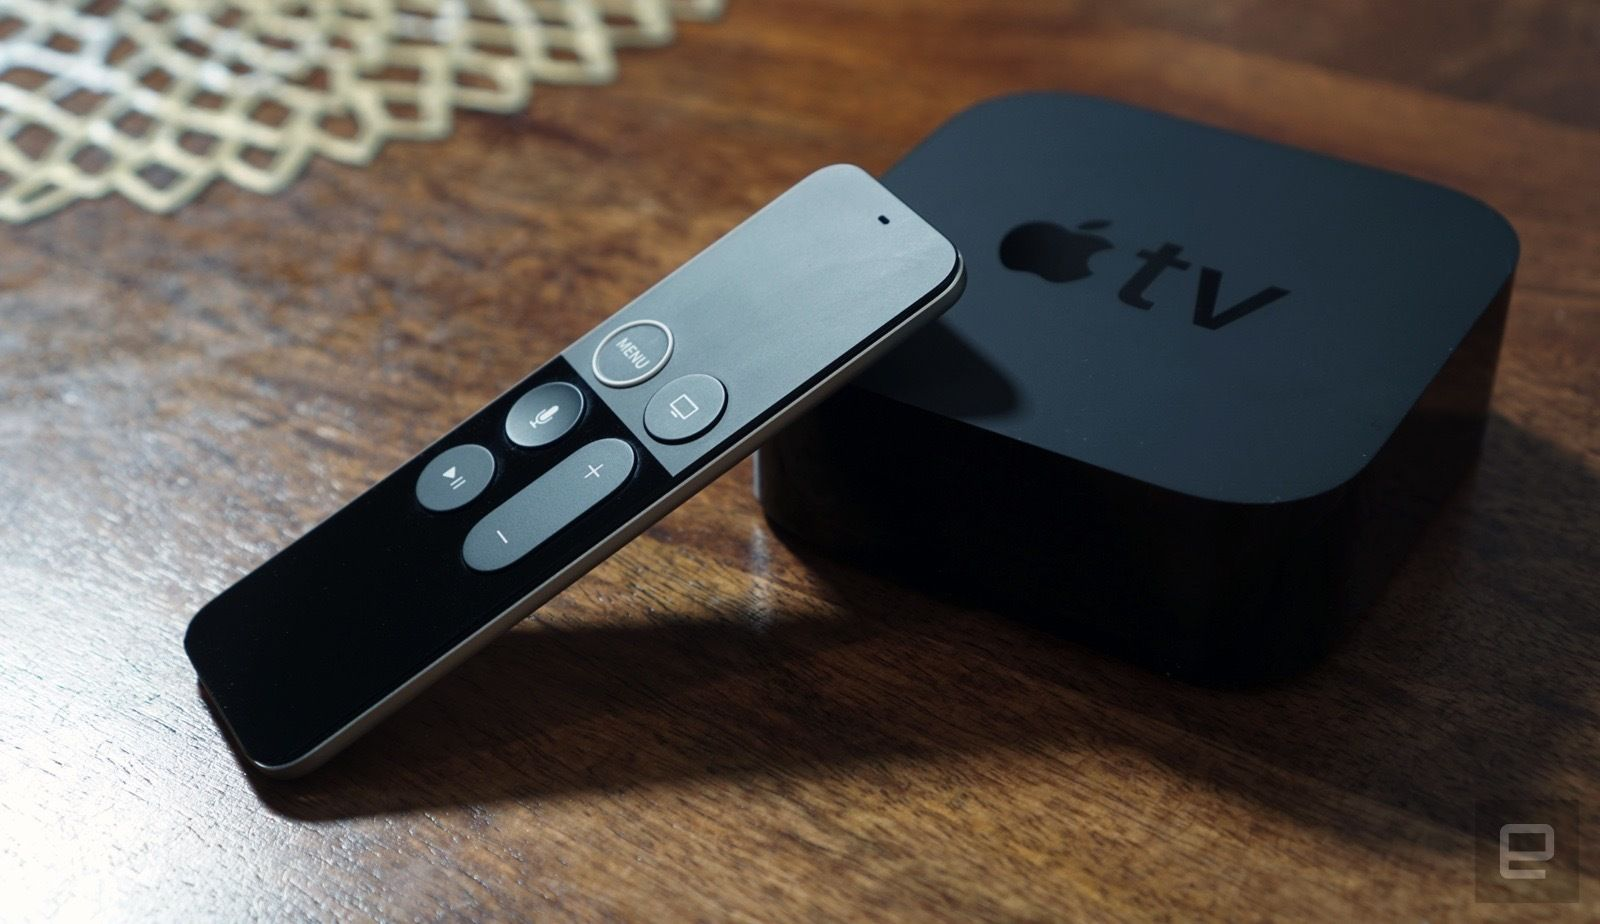 Apple TV now plays YouTube videos in 4K, with limits